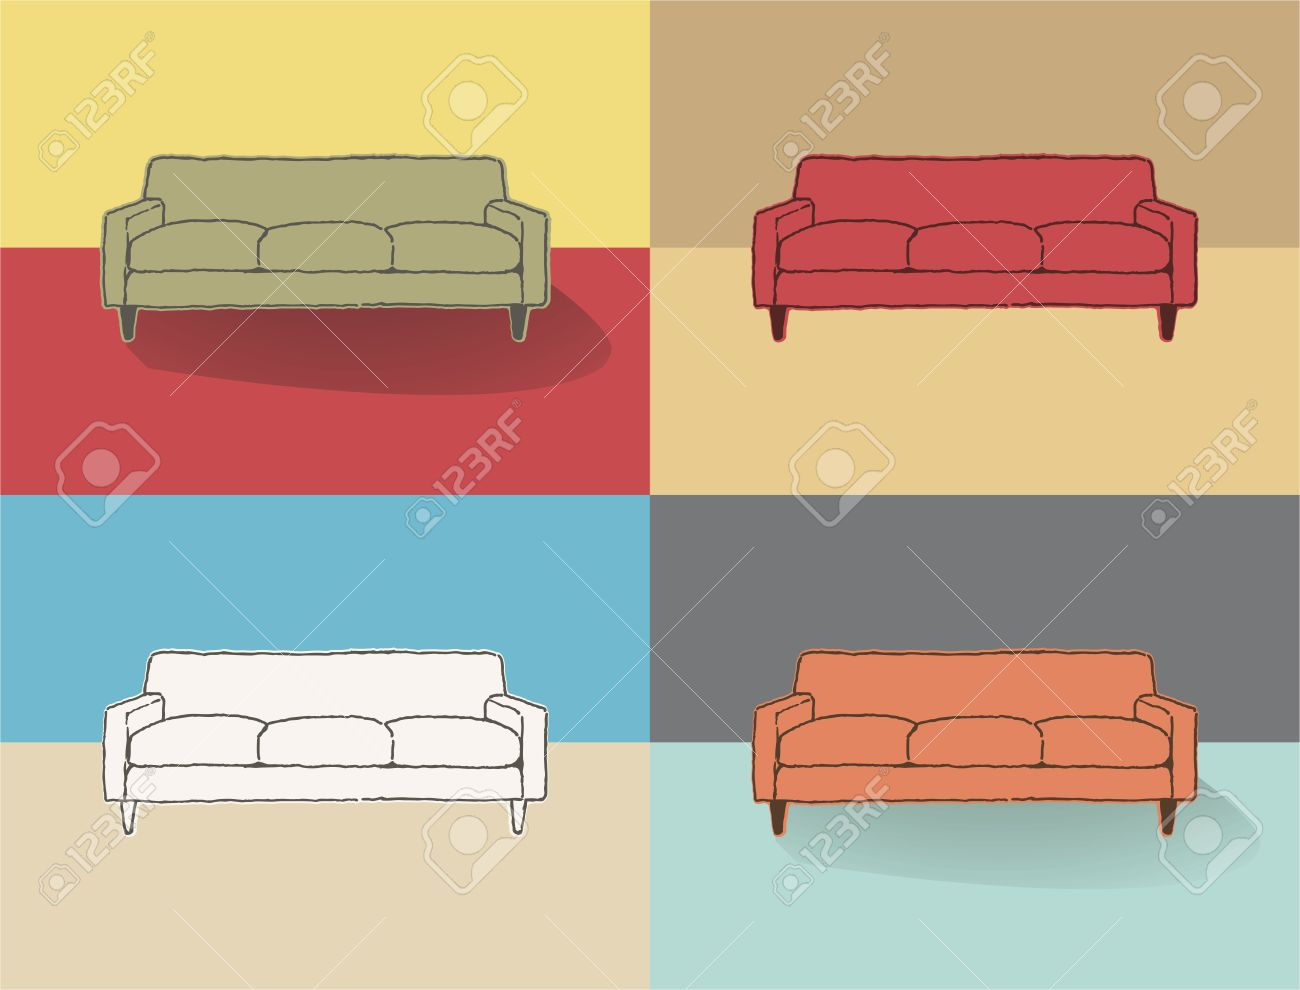 couch drawing. couch drawing stock vector - 36903374